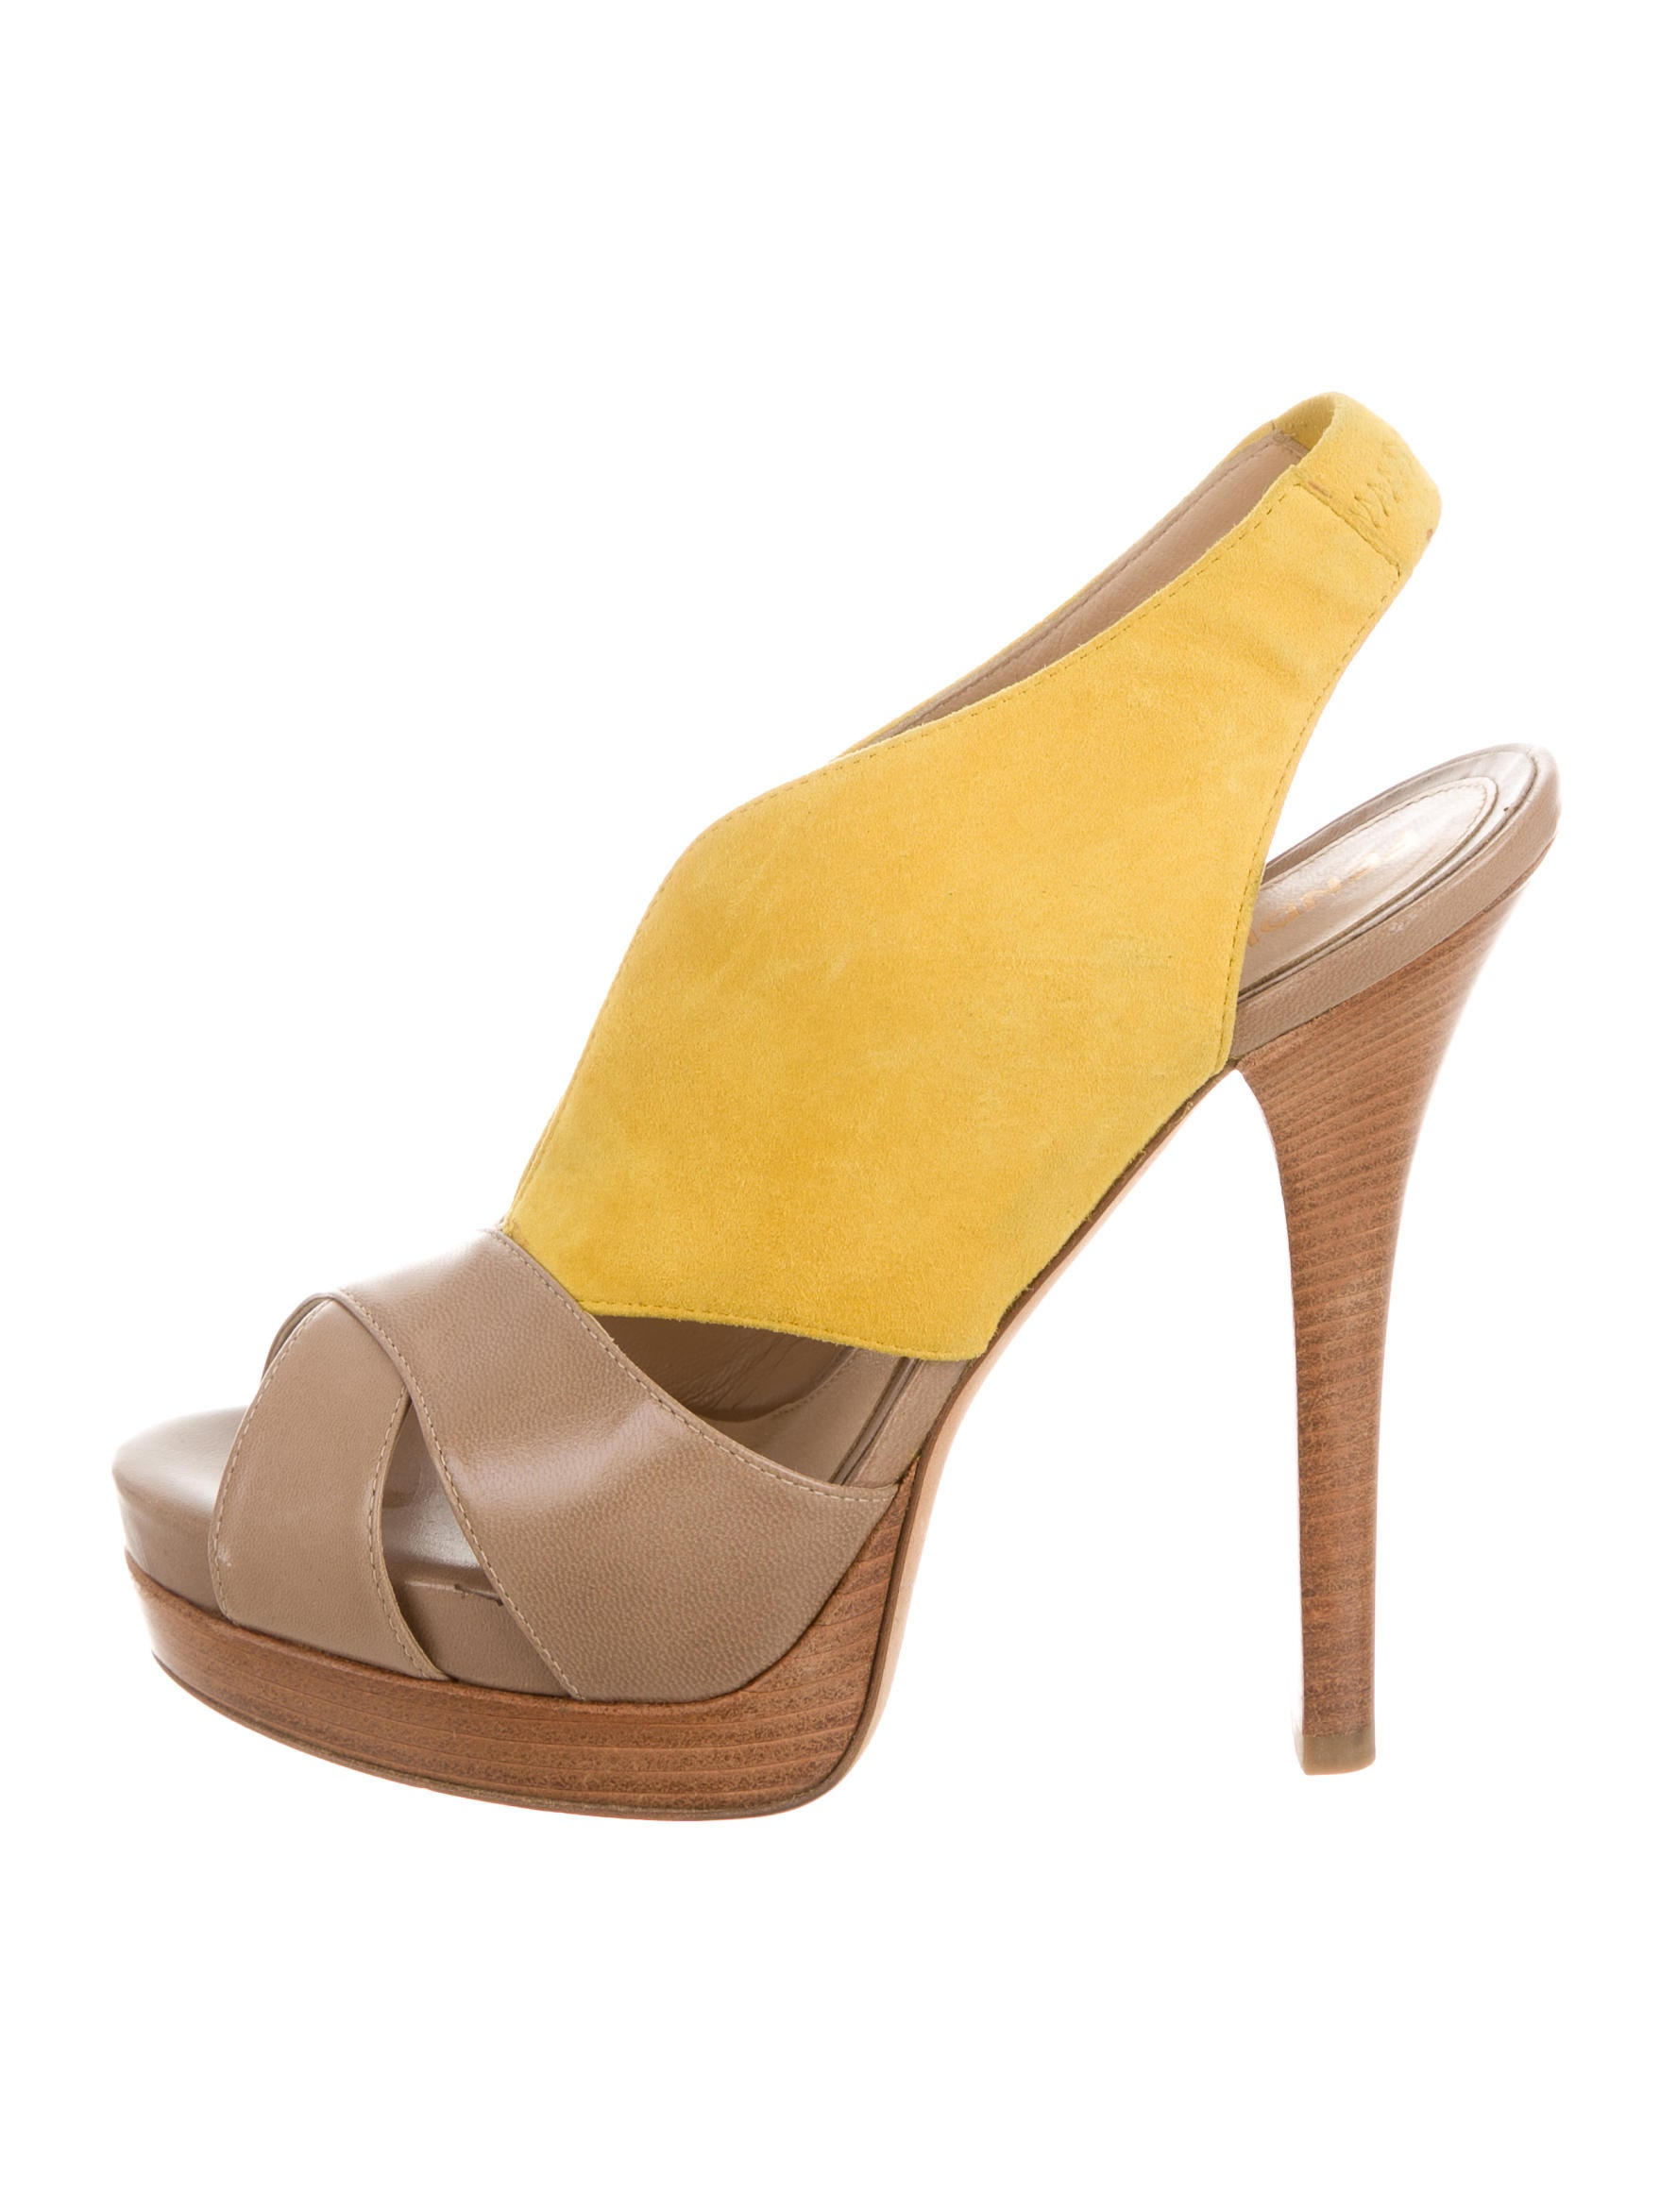 Find slingback platform heels at ShopStyle. Shop the latest collection of slingback platform heels from the most popular stores - all in one place.